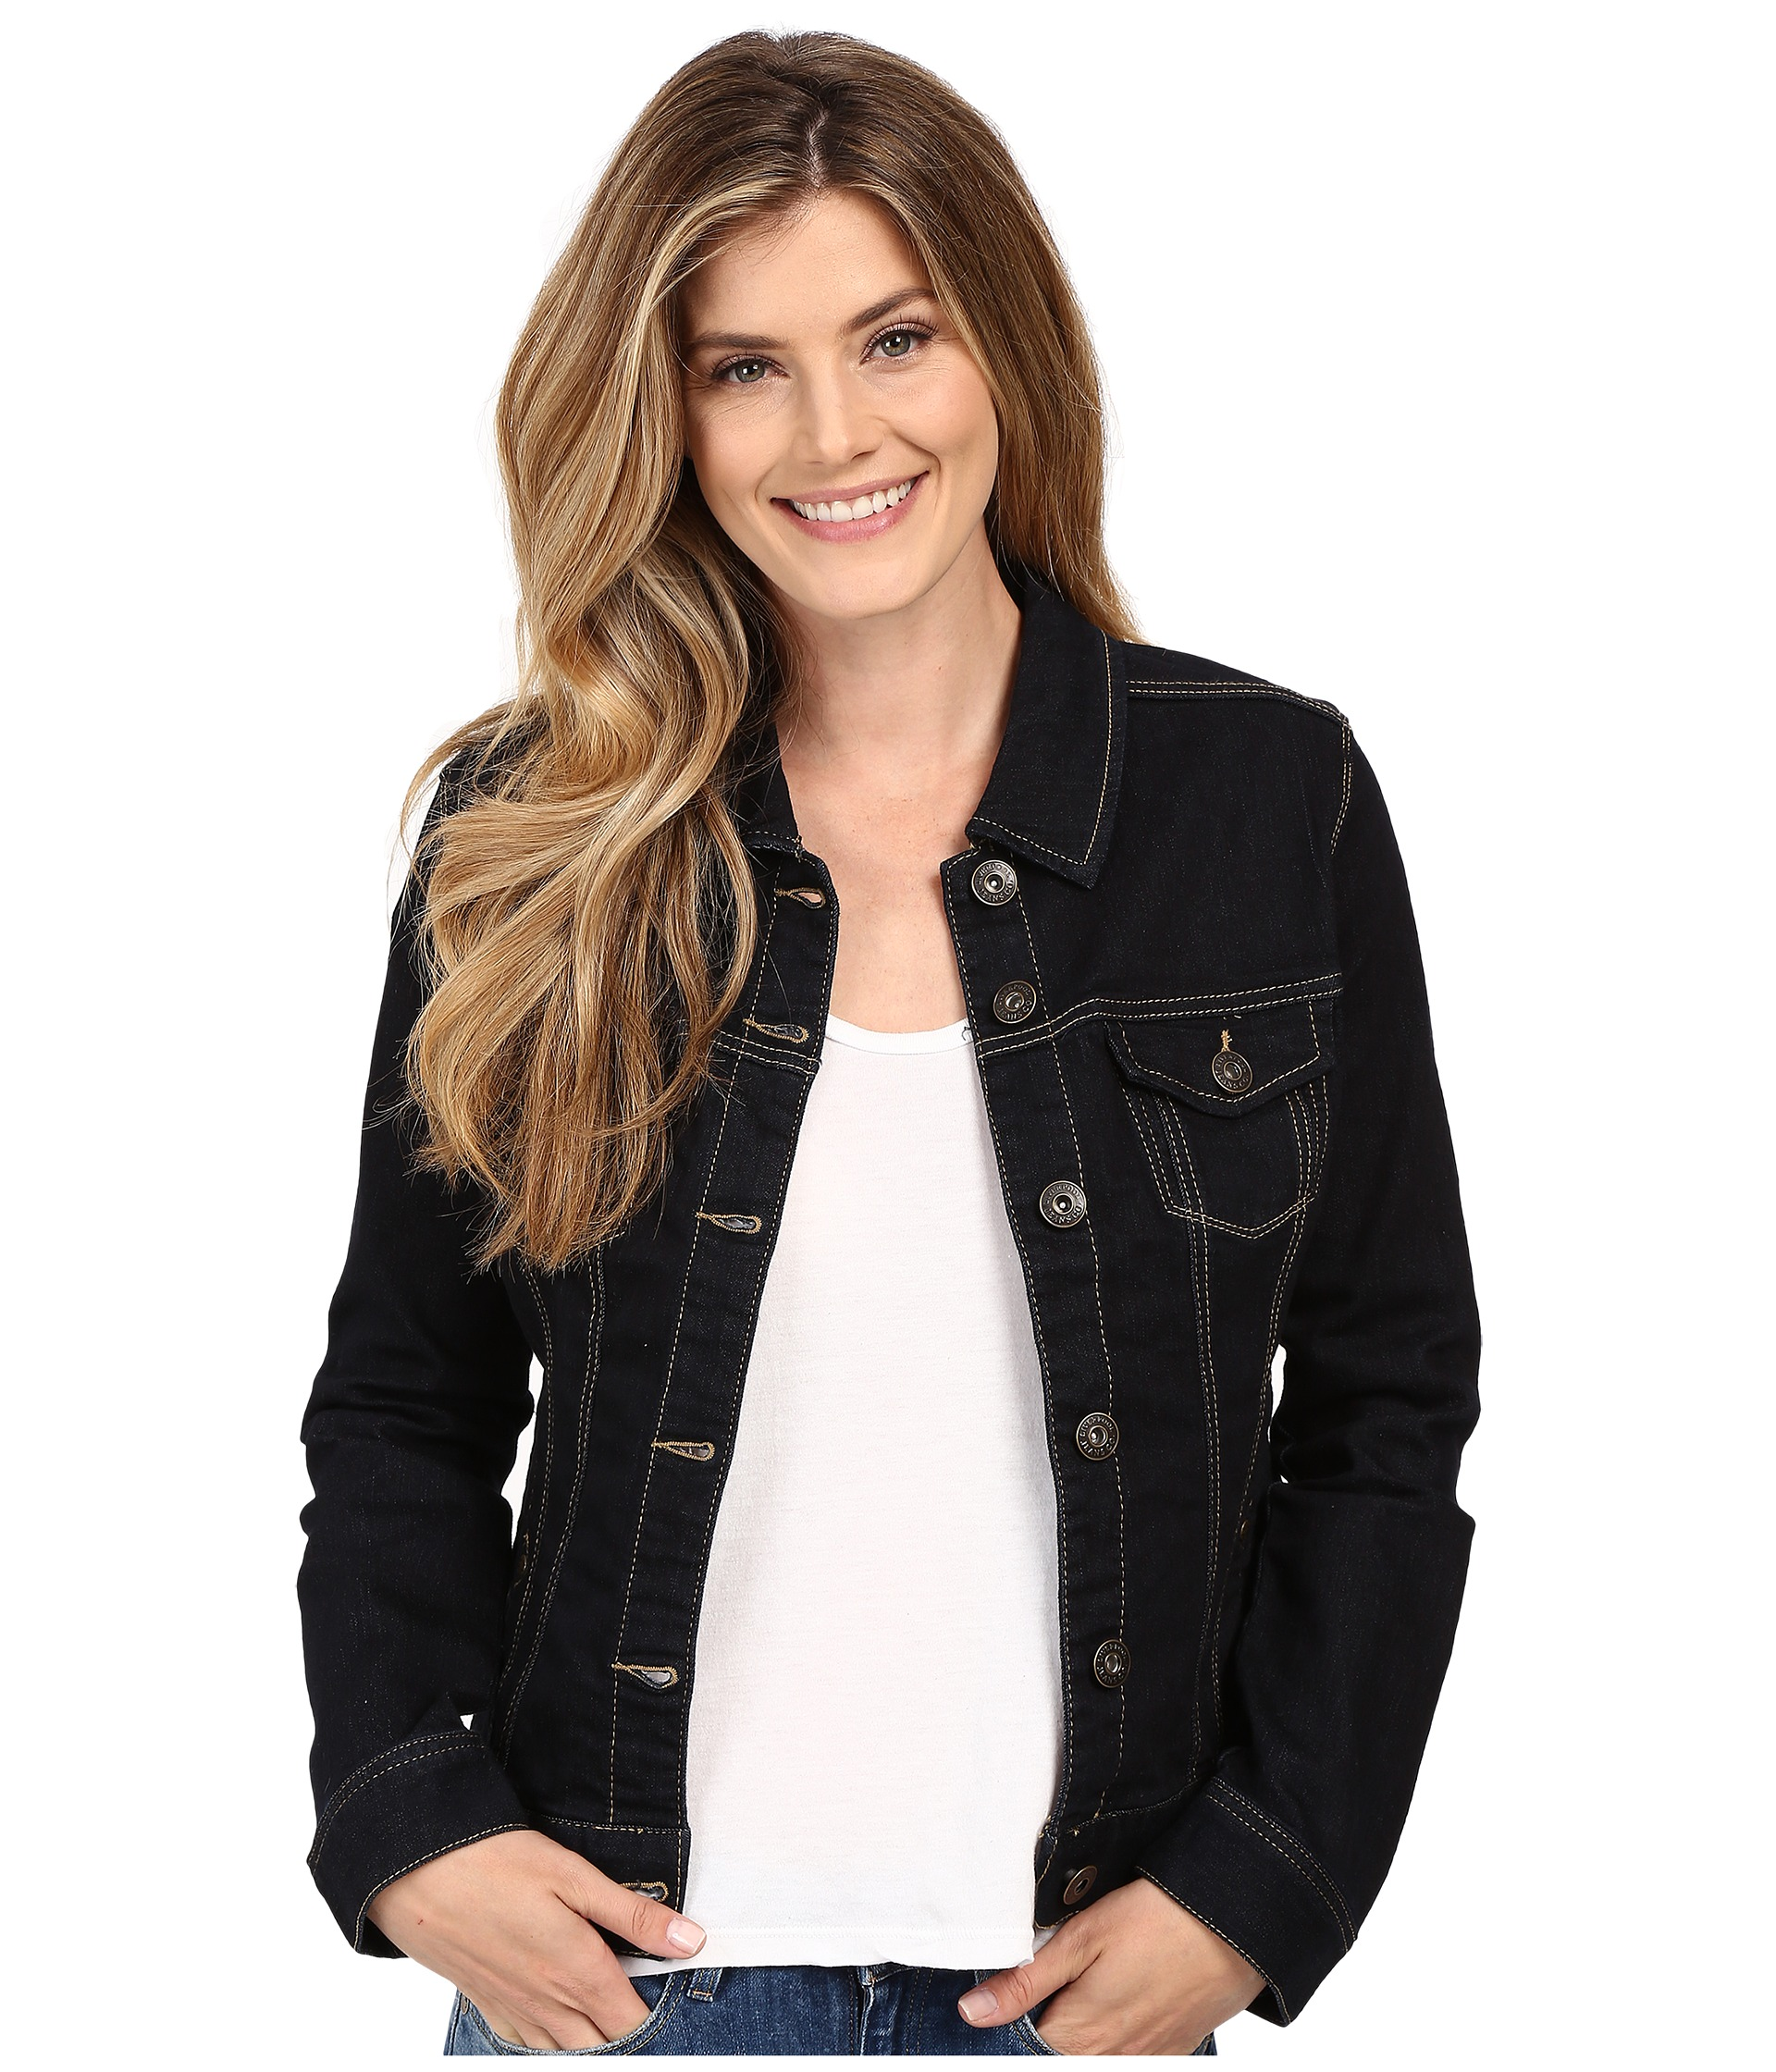 Liverpool Denim Jacket - Zappos.com Free Shipping BOTH Ways